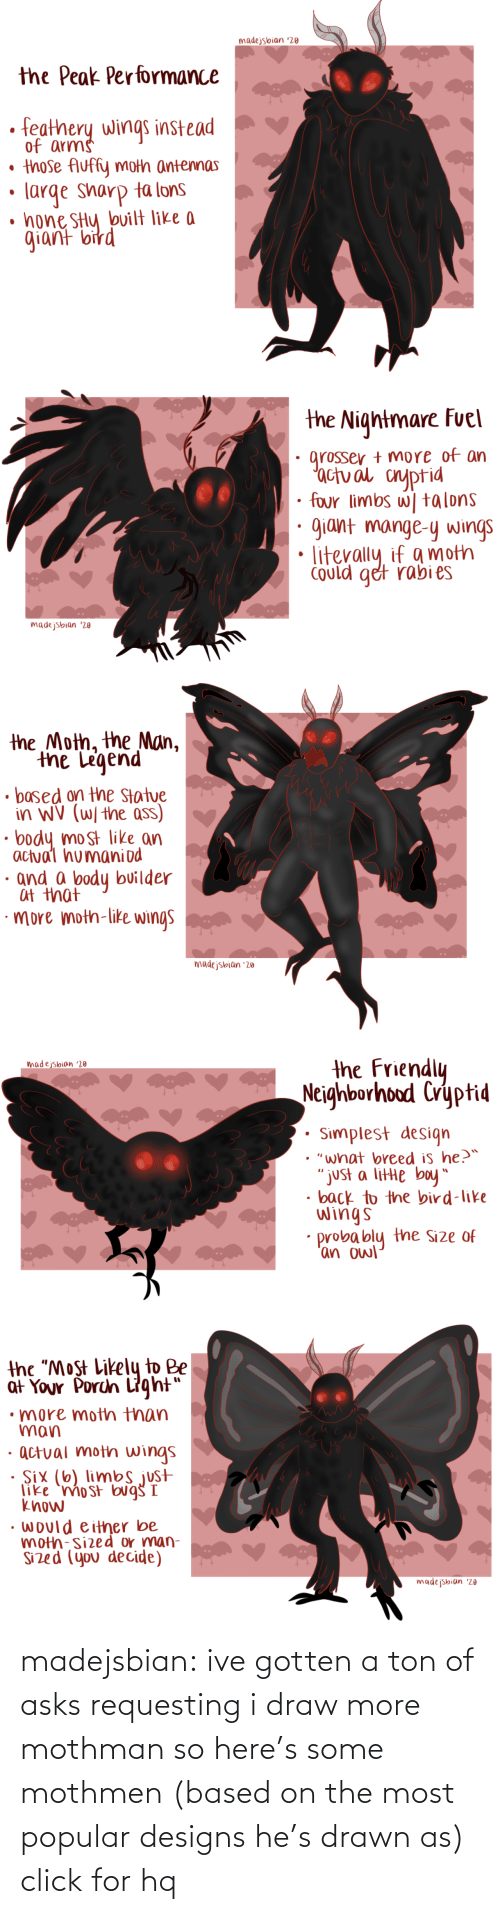 "Either: madejsbian '20  the Peak Performance  feathery wings instead  of arms  • those Auffy moth antennas  large sharp ta lons  • hone SHy bvilt like a  giant bird   the Nightmare Fuel  grosser + more of an  'actual cnyptid  four limbs w| talons  giant mange-y wings  Could get rabi es  madejsbian '20   the Moth, the Man,  the Legend  • based on the Statue  in WV (W/ the ass)  body most like an  actual humaniod  · and a body builder  at that  ·more moth-like wings  madejsbian '20   the Friendly  Neighborhood Cryptid  madejsbian '20  Simplest design  • ""what breed is he?™  ""just a litte boy""  • back to the bird-like  wings  probably the Size of  'an owl   the ""Most Likely to Be  at Your Porch Light""  •more moth than  man  · actual moth wings  · Six (6) limbs just  like 'mo st bug I  know  • would either be  moth-sized or man-  Sized (you decide)  madejsbian '20 madejsbian: ive gotten a ton of asks requesting i draw more mothman so here's some mothmen (based on the most popular designs he's drawn as)